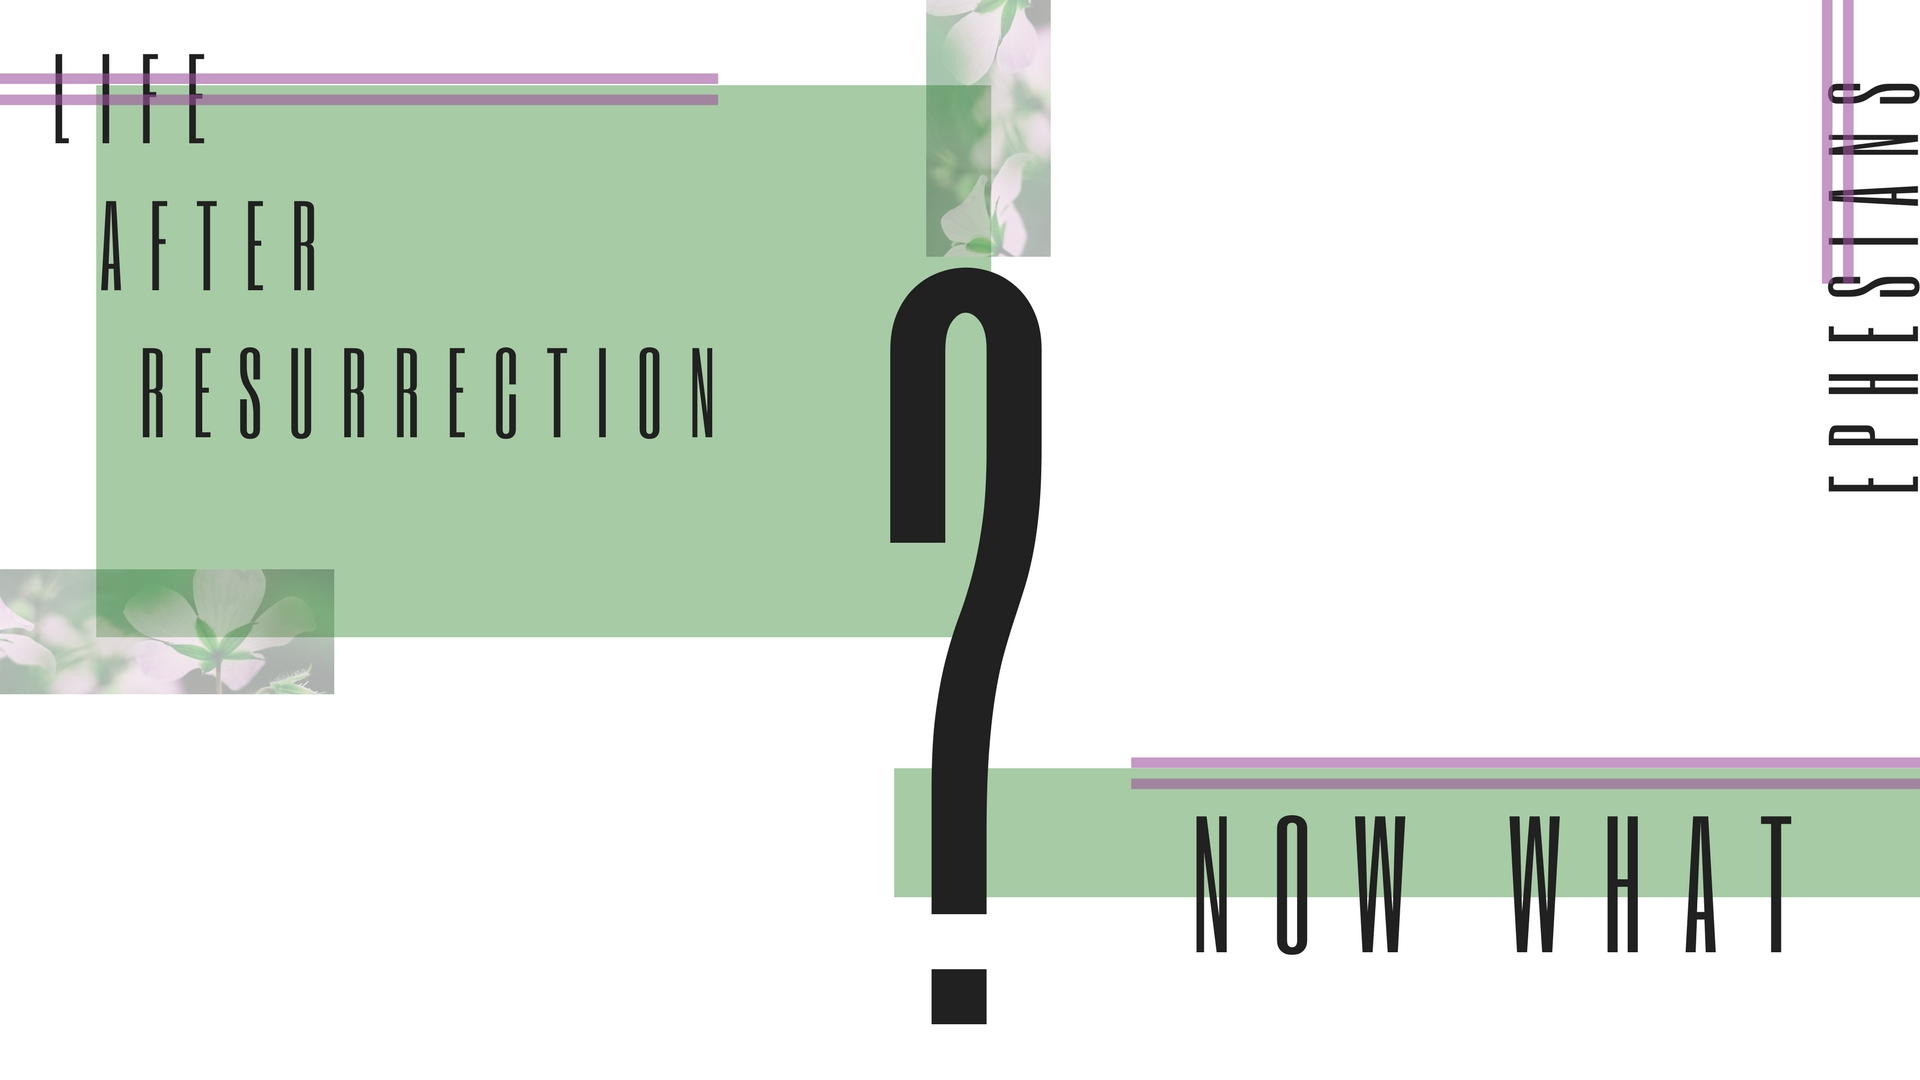 NOW WHAT: LIFE AFTER RESURRECTION - Now that Jesus has been raised, what does that mean for our lives? What does it look like to live in light of the resurrection? Join us in this Eastertide series through the book of Ephesians as we seek to understand the significance of the resurrection for our individual lives and our life together as the church.